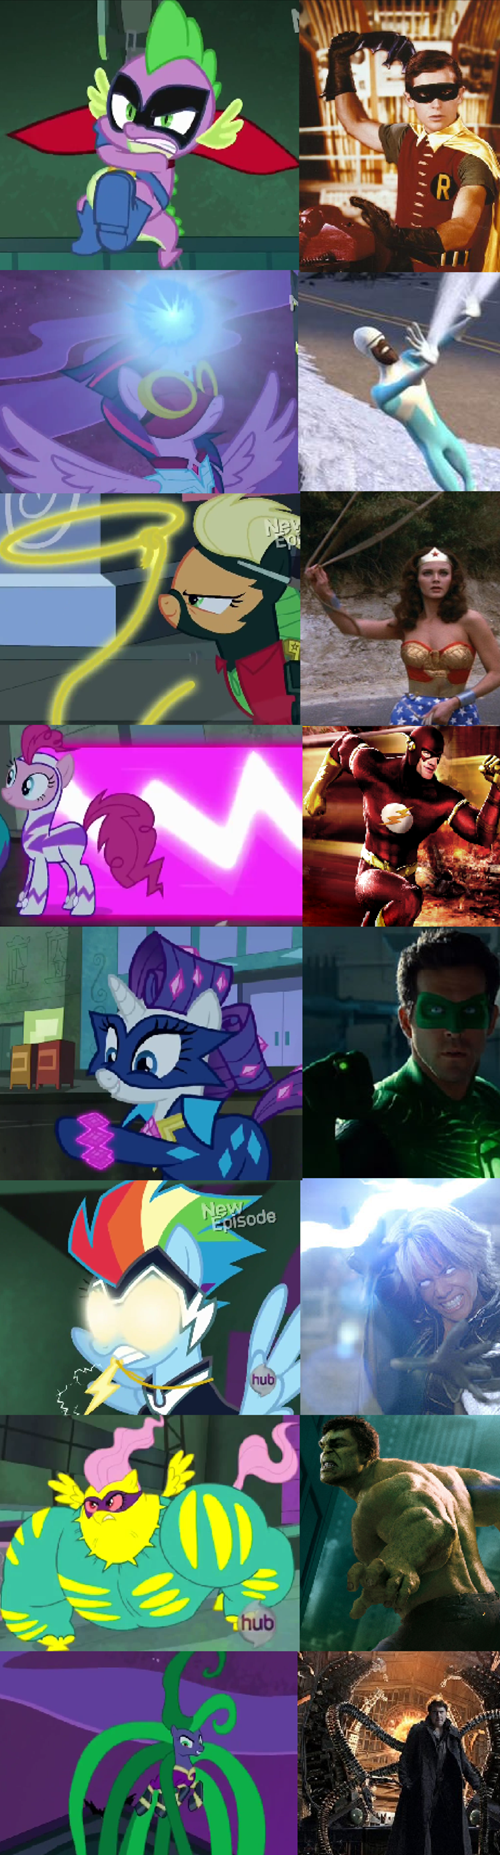 MLP superheroes mane 6 power ponies - 7972394240